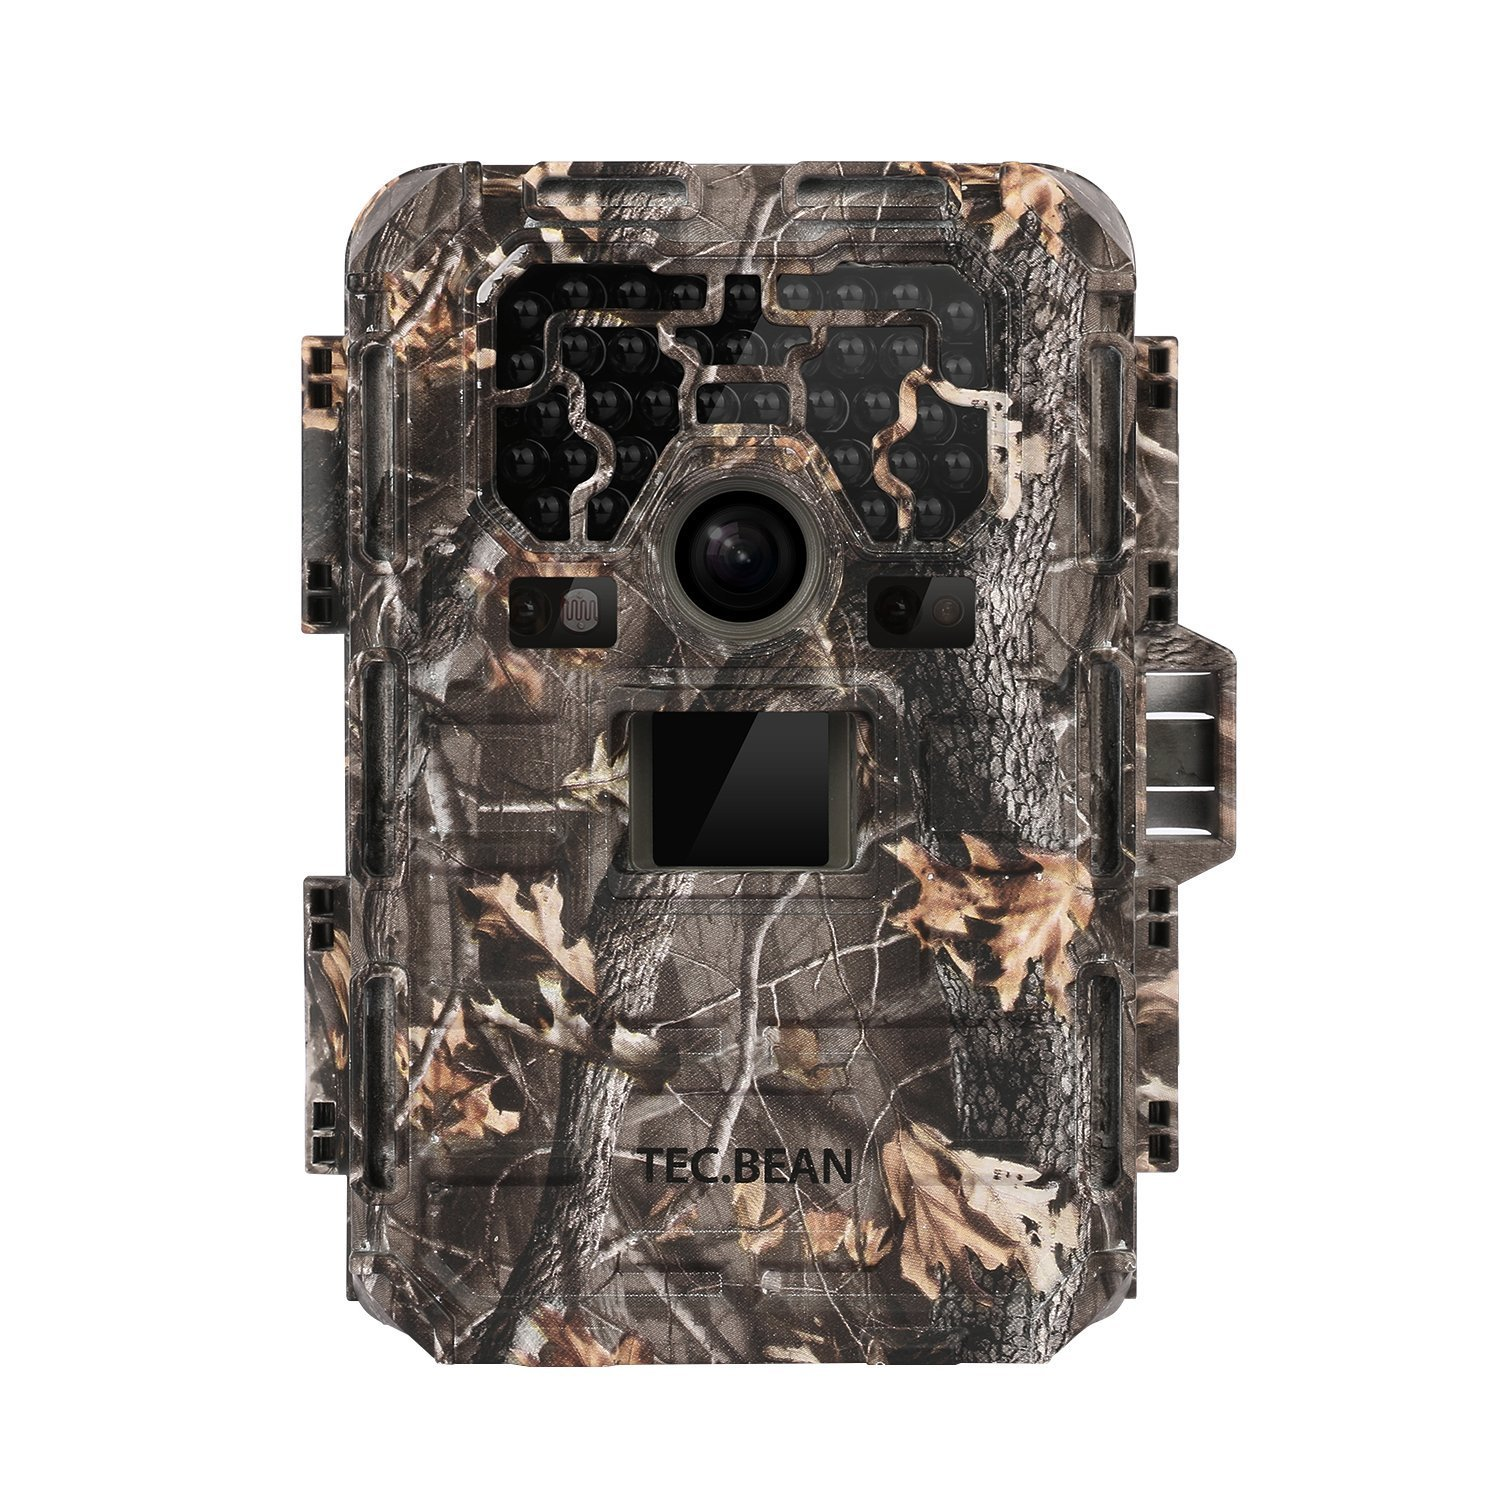 TEC.BEAN Game Trail Hunting Camera, 12MP 1080P Full HD No Glow Infrared Wildlife Camera with Night Vision up to 23M/75ft, 36pcs 940nm IR LEDs and IP66 Waterproof Surveillance Trail Cam